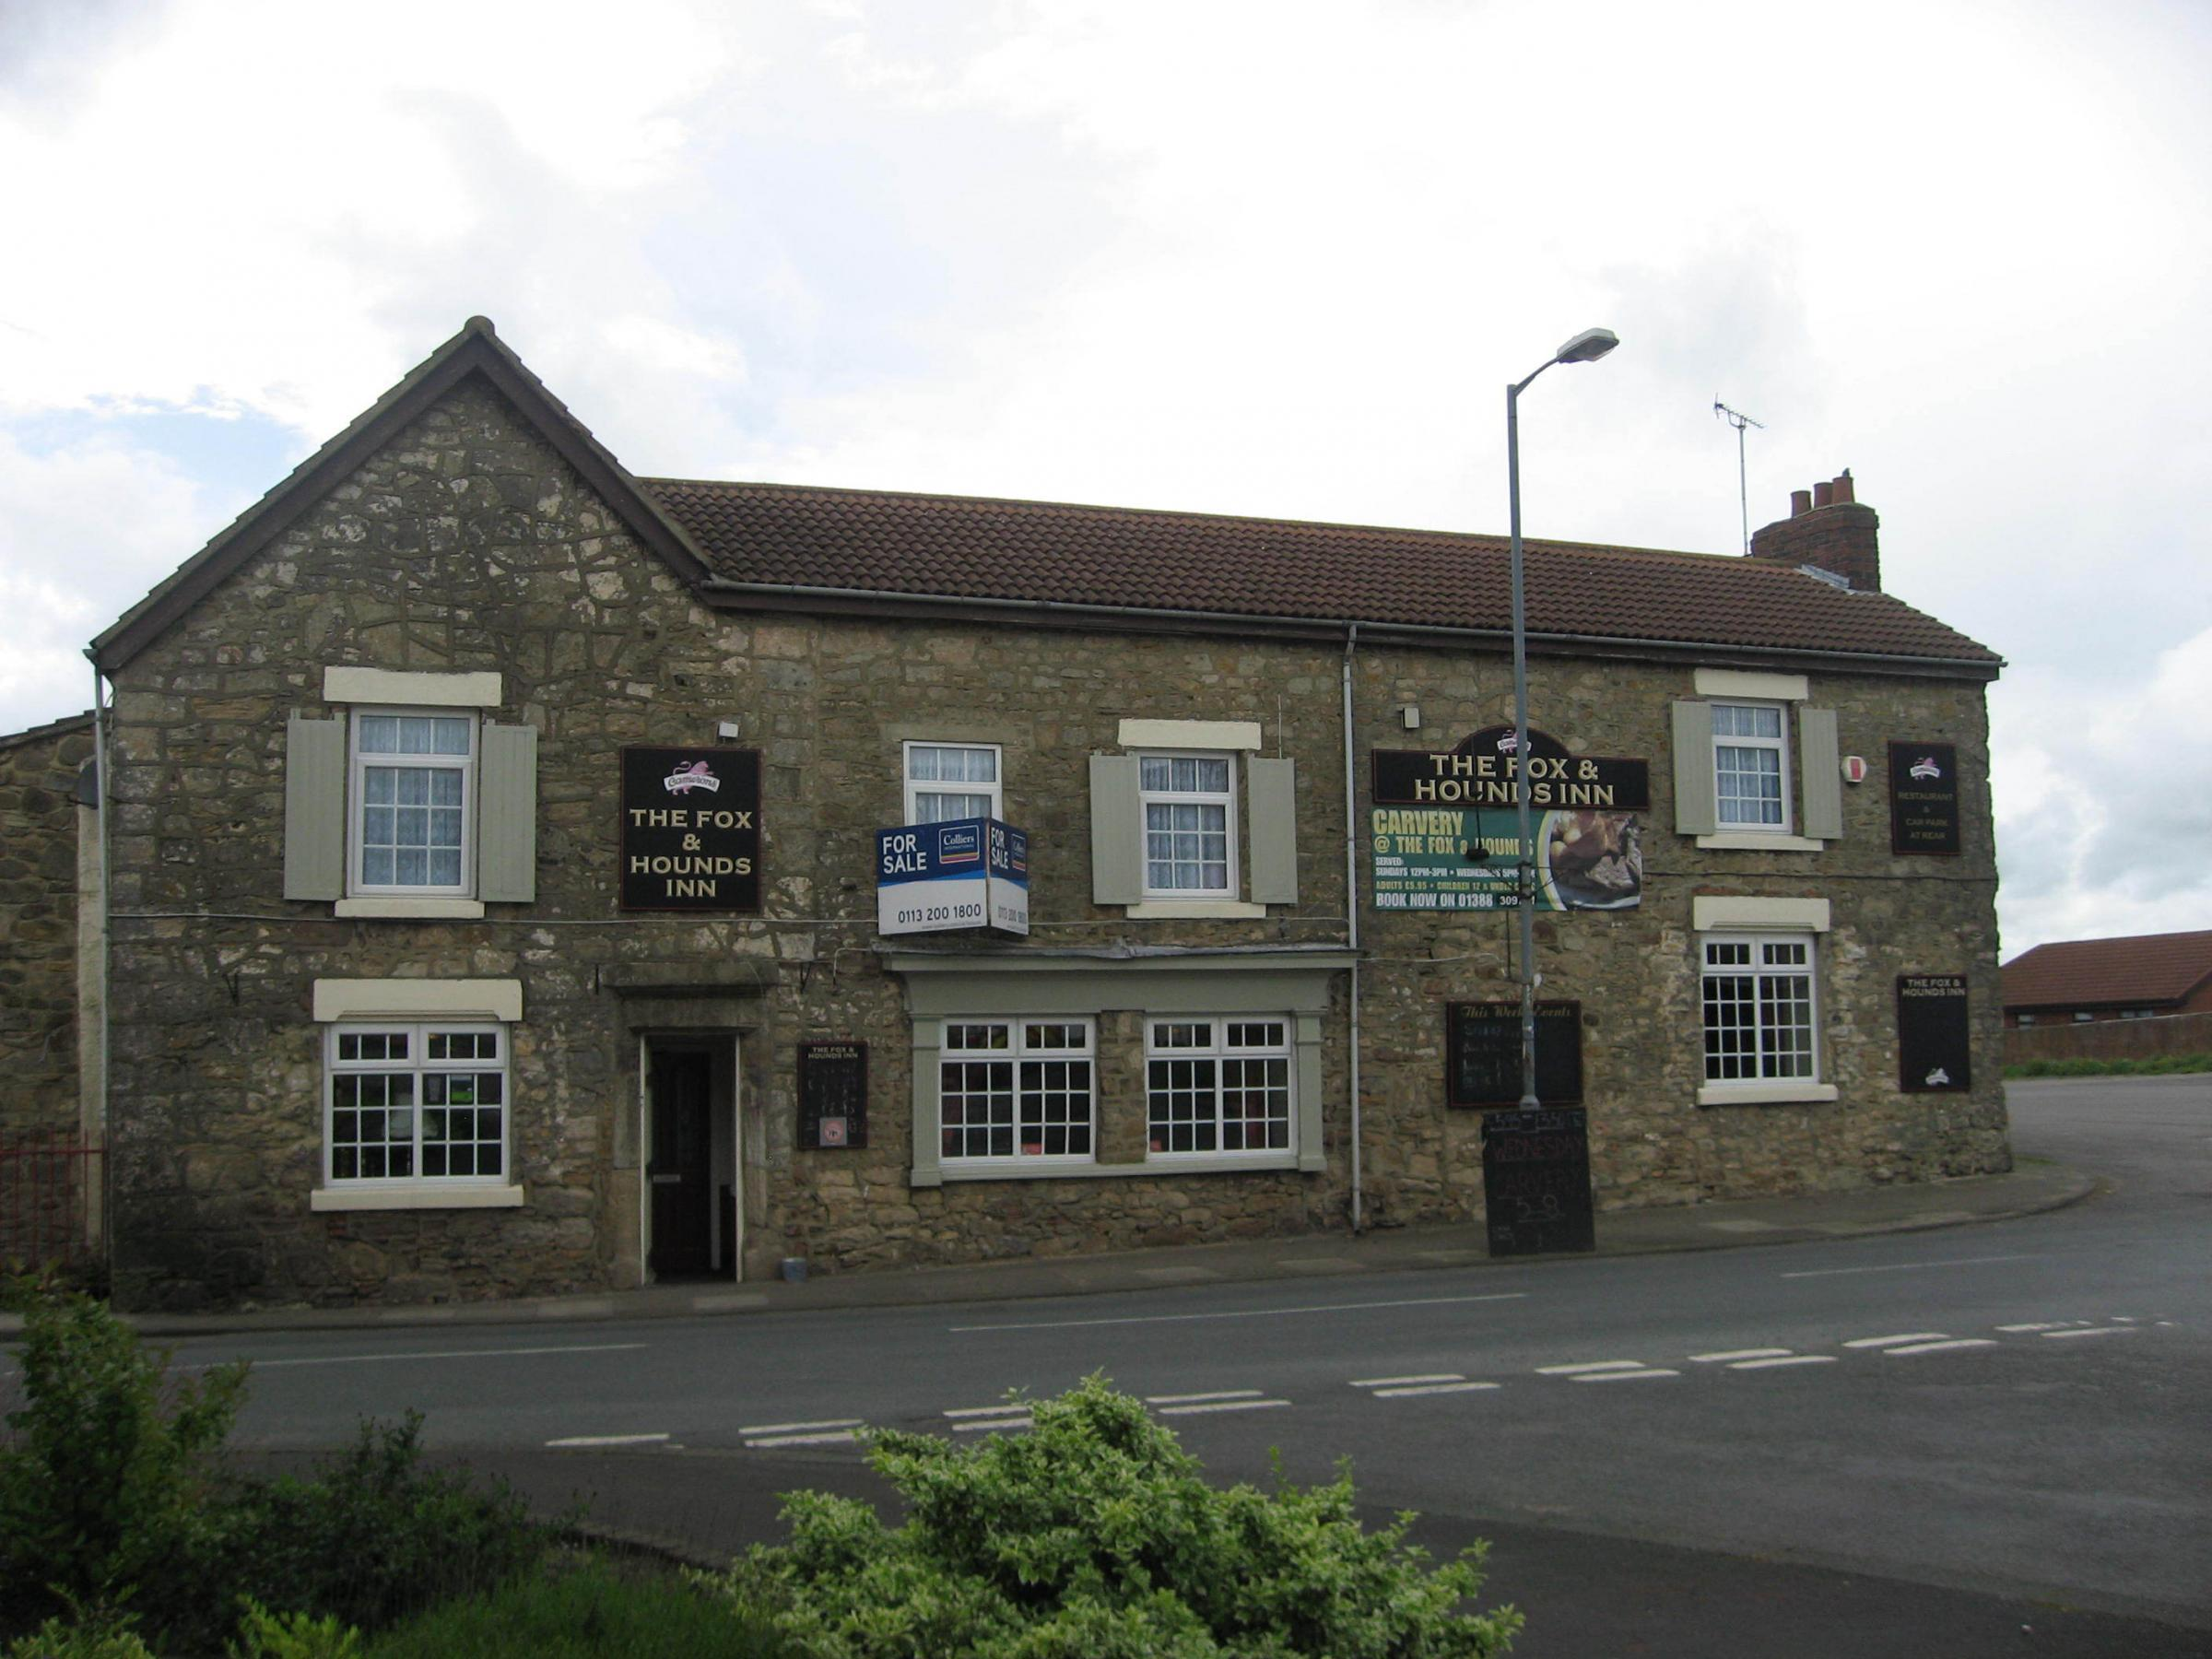 The Fox and Hounds pub which is to be refurbished as part of a village development